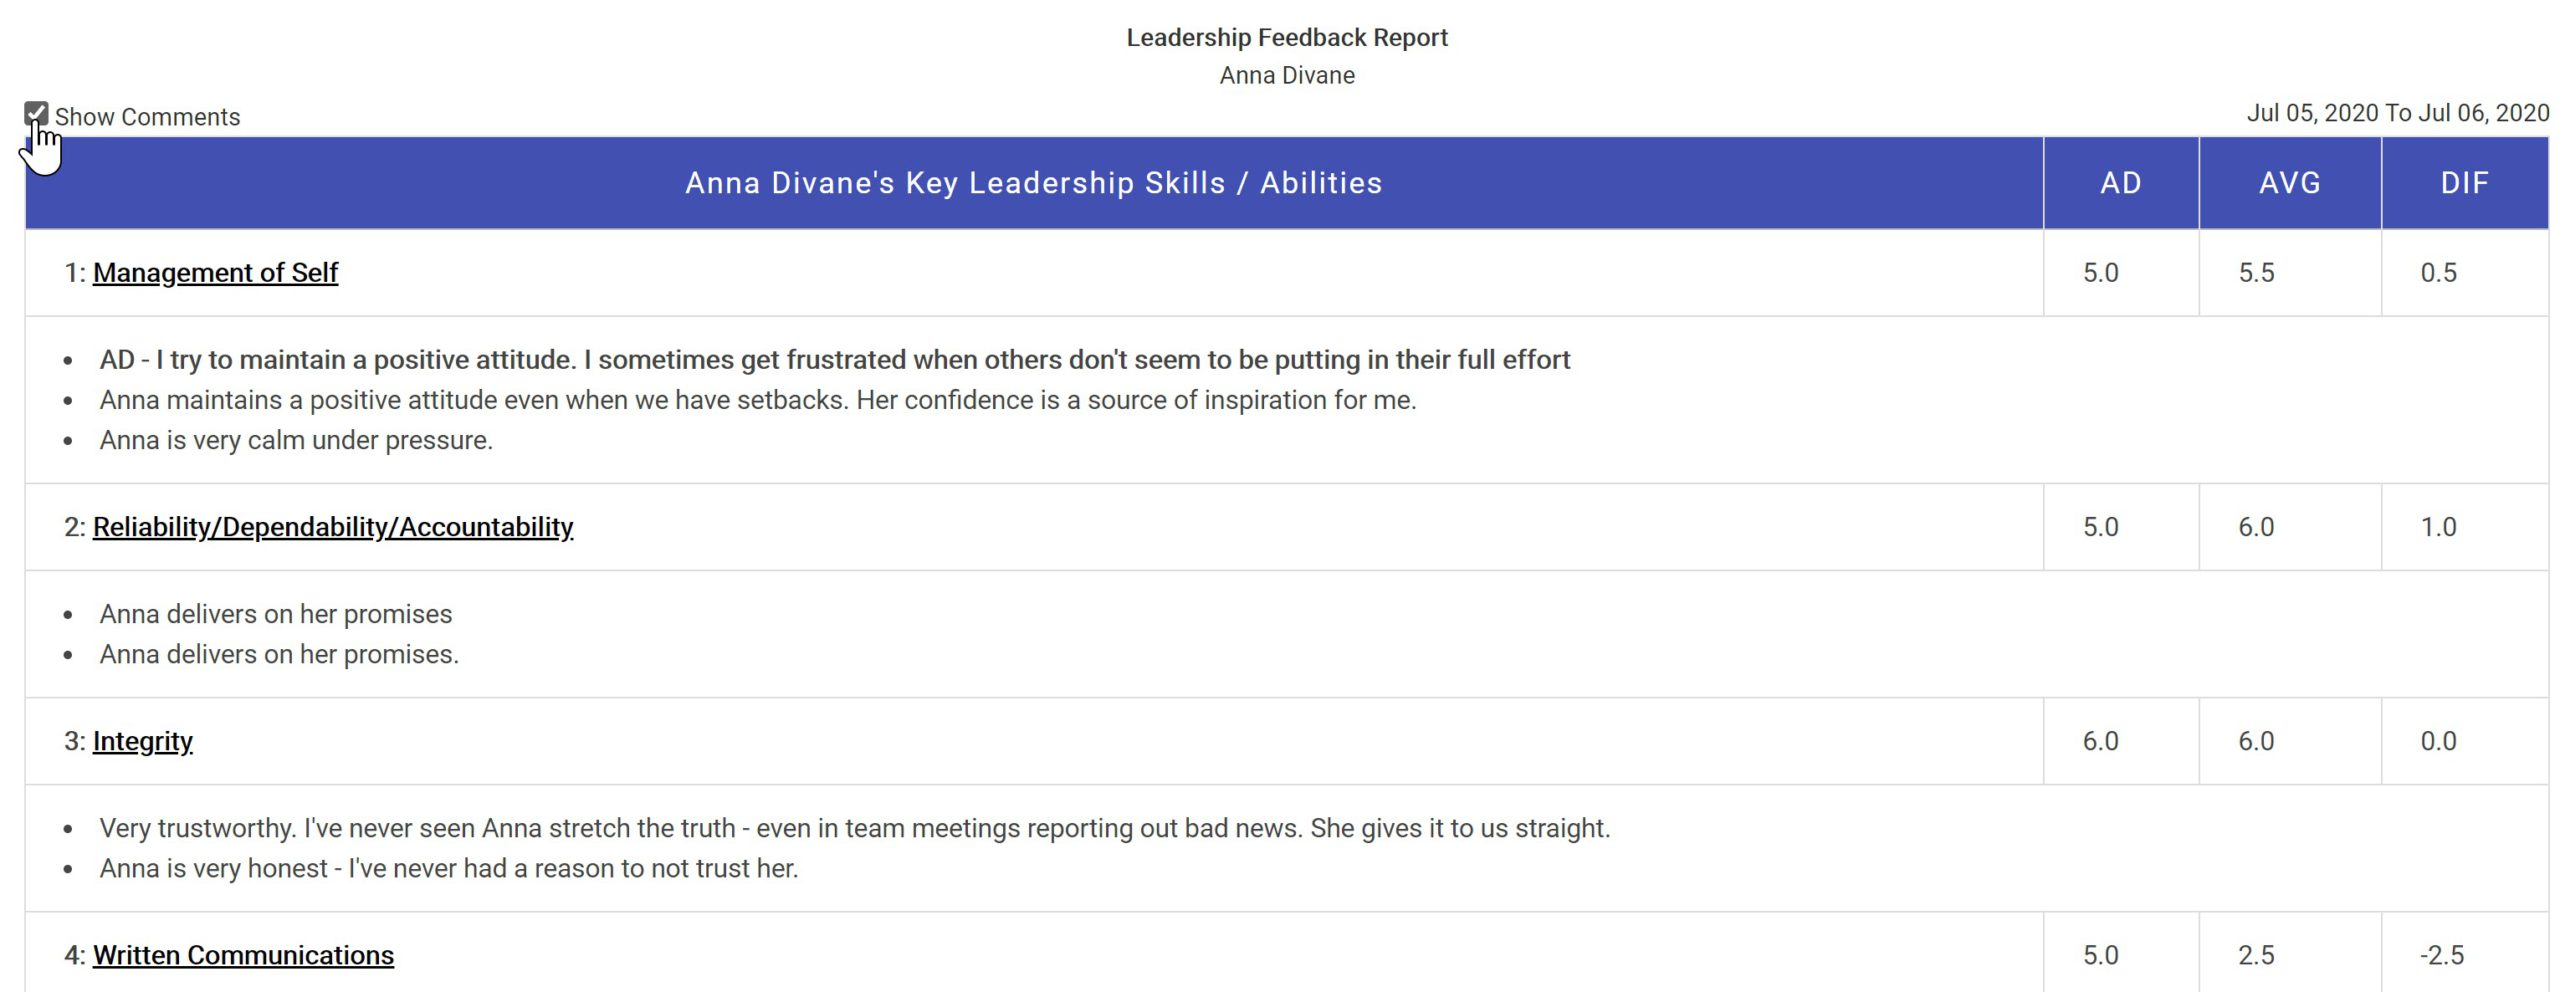 2020-07-08_Leadership Feedback Report with Comments